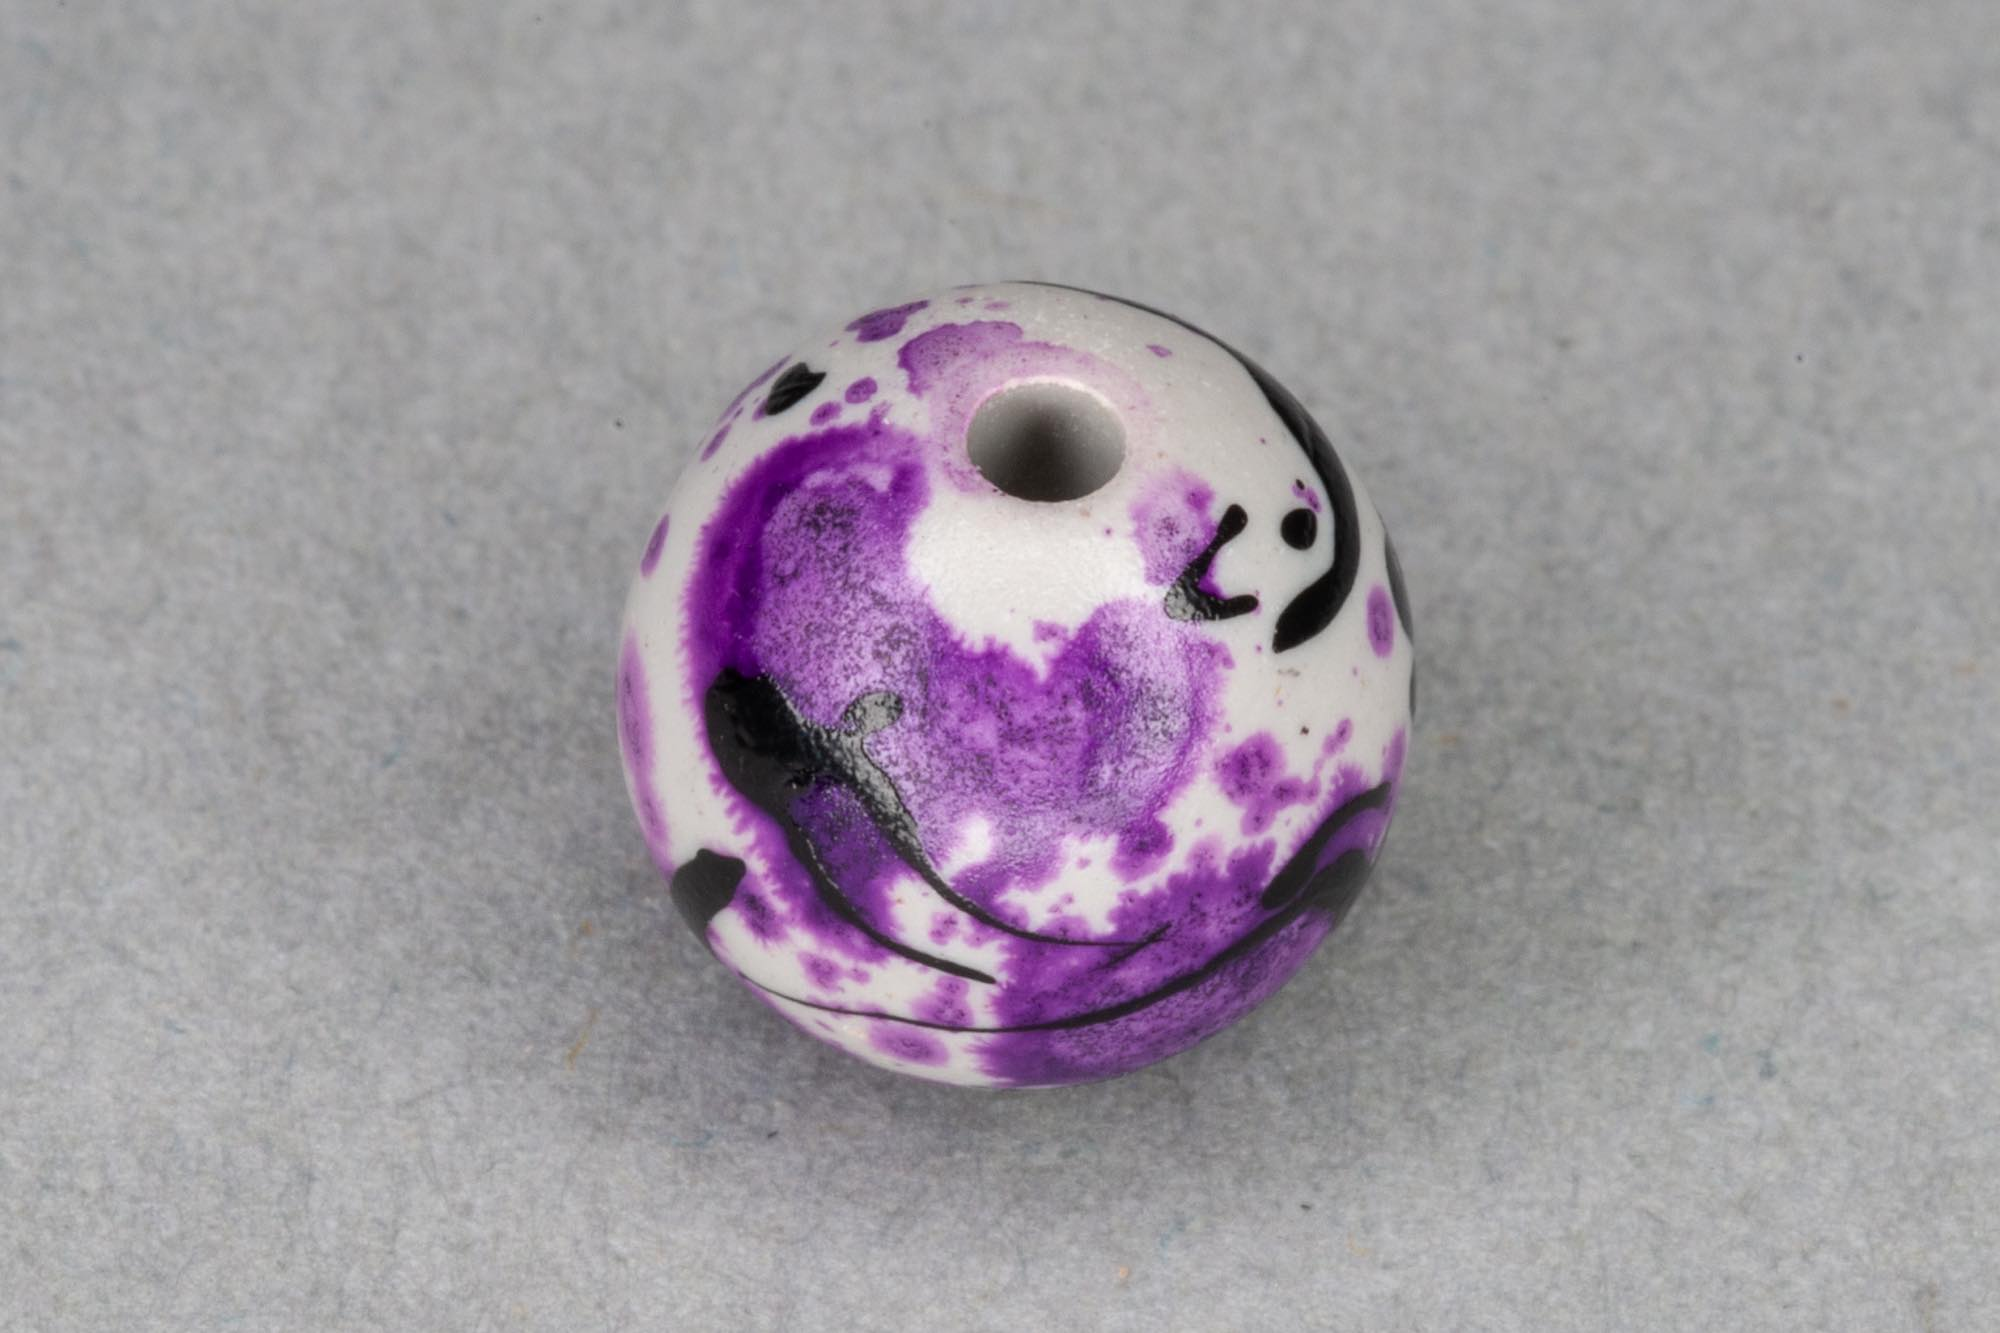 Round Acrylic 10mm Bead With Purple Paint Effect 1.2mm hole